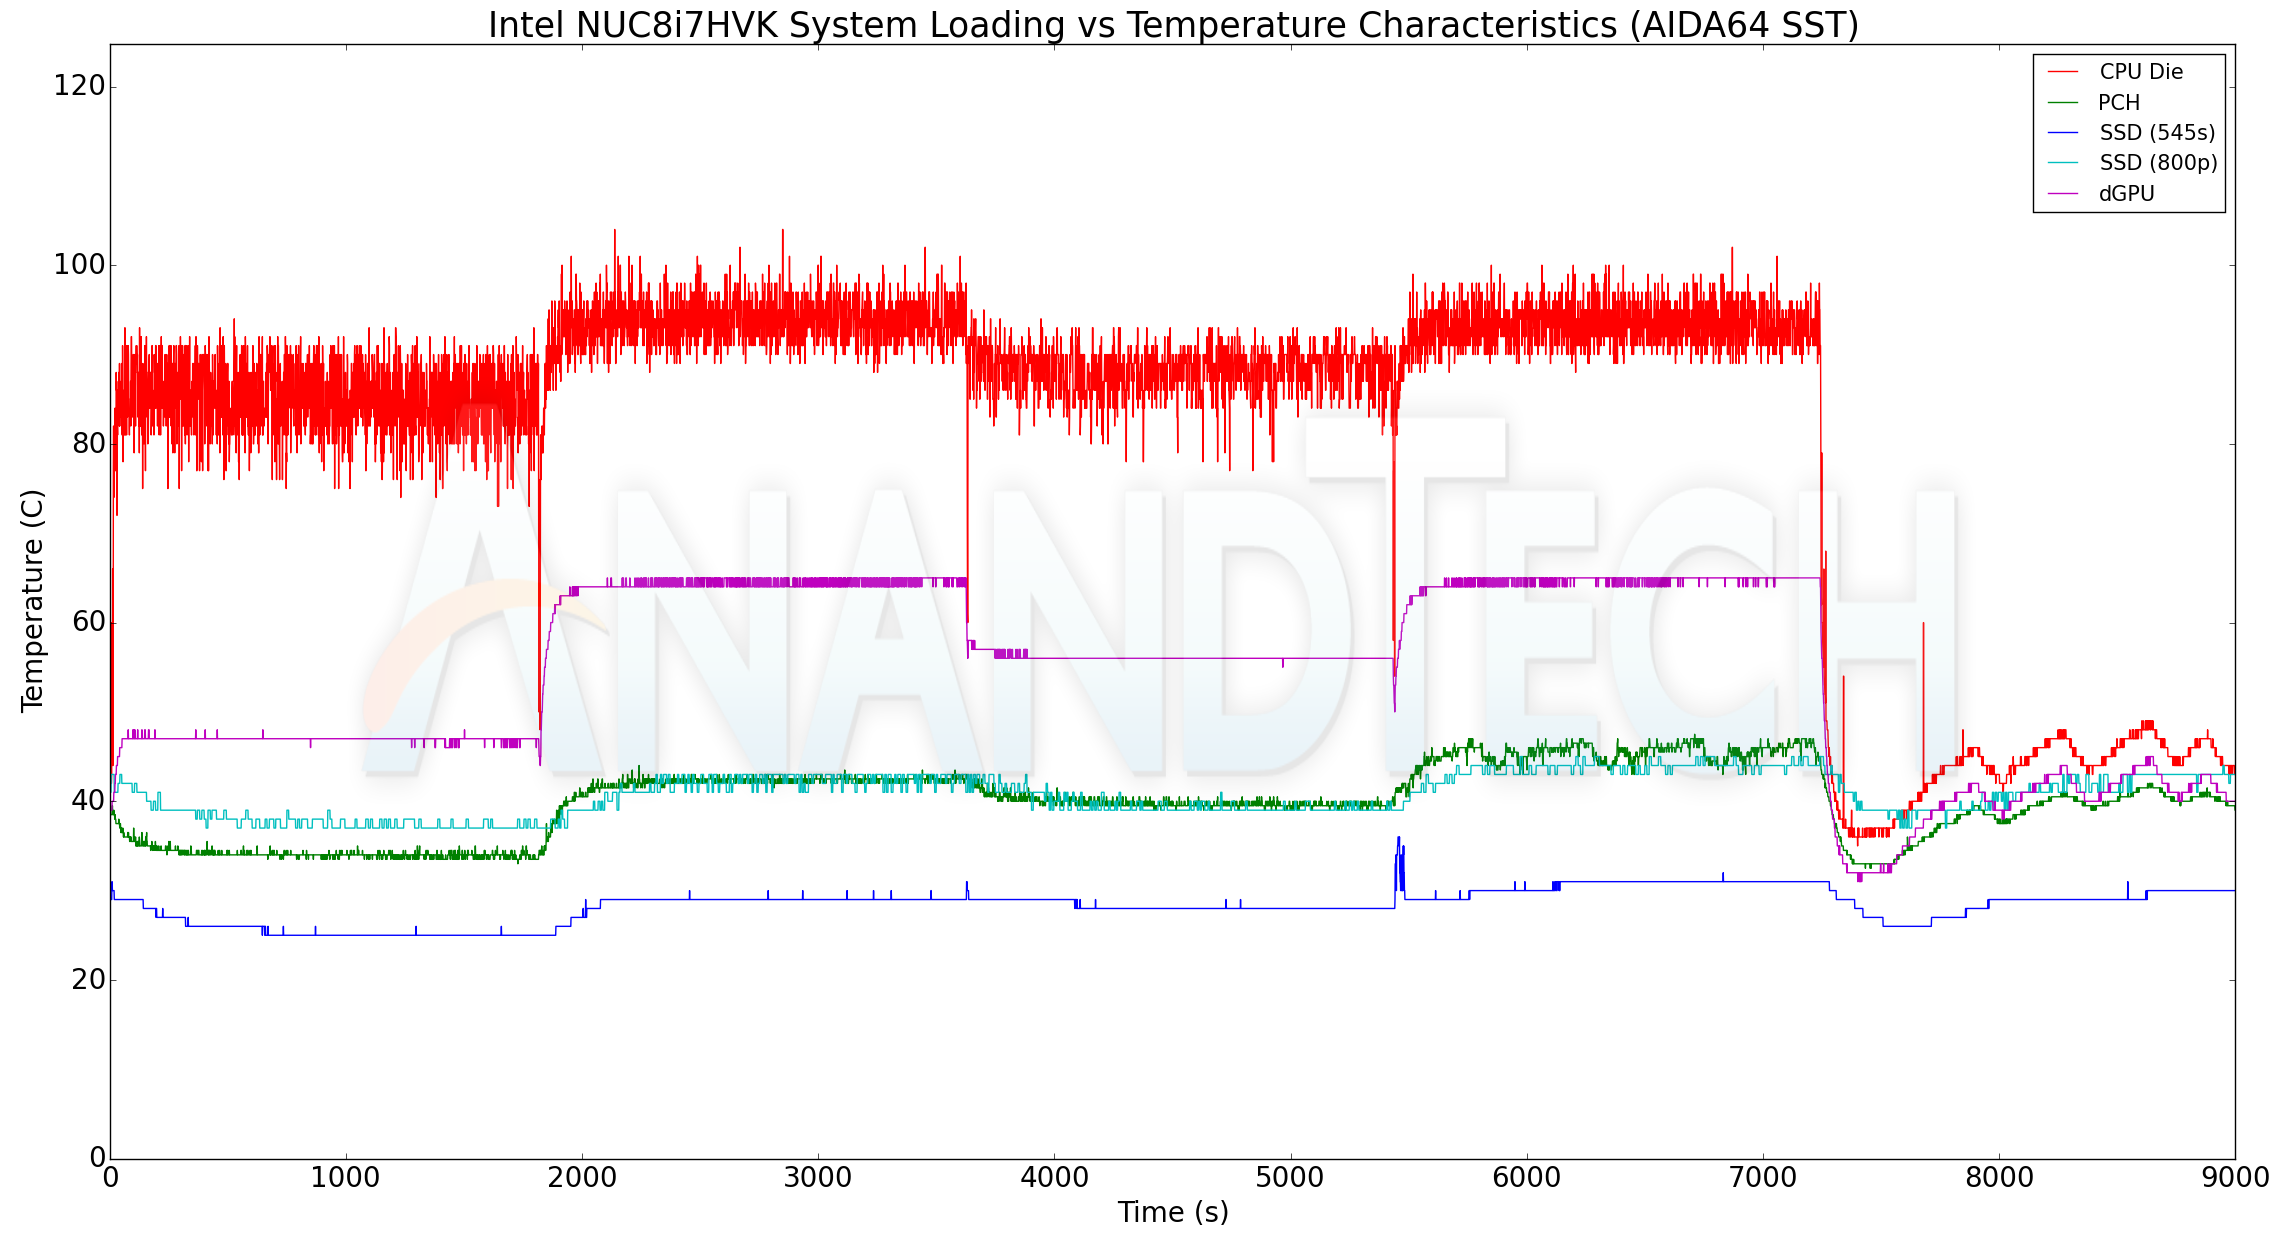 Power Consumption and Thermal Performance - The Intel